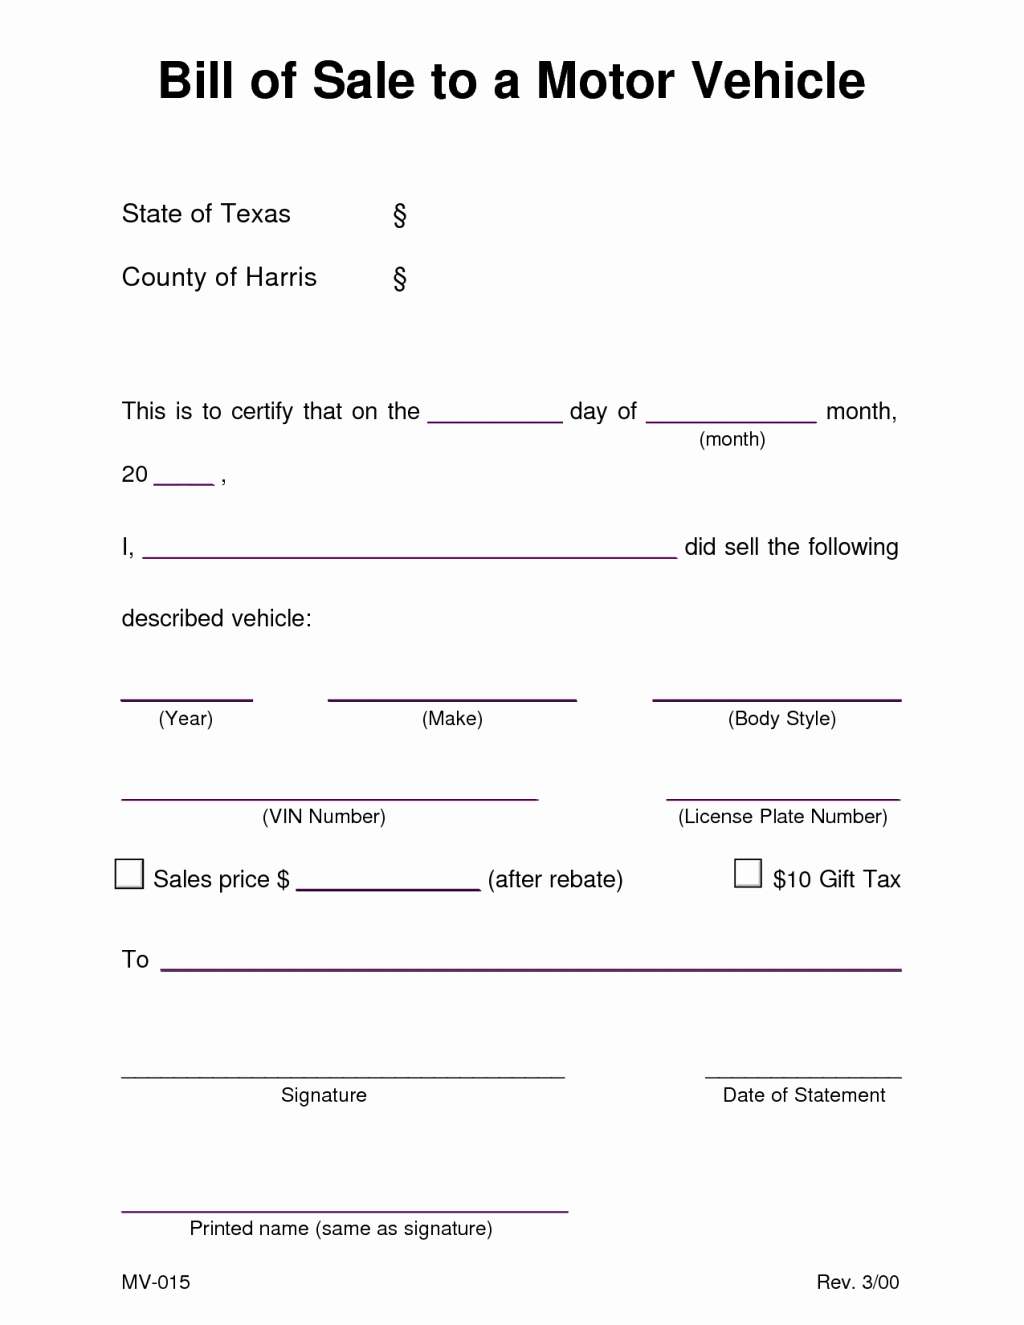 Bill Of Sale form Example Unique Vehicle Sale Template Bill someiart someiart Mughals